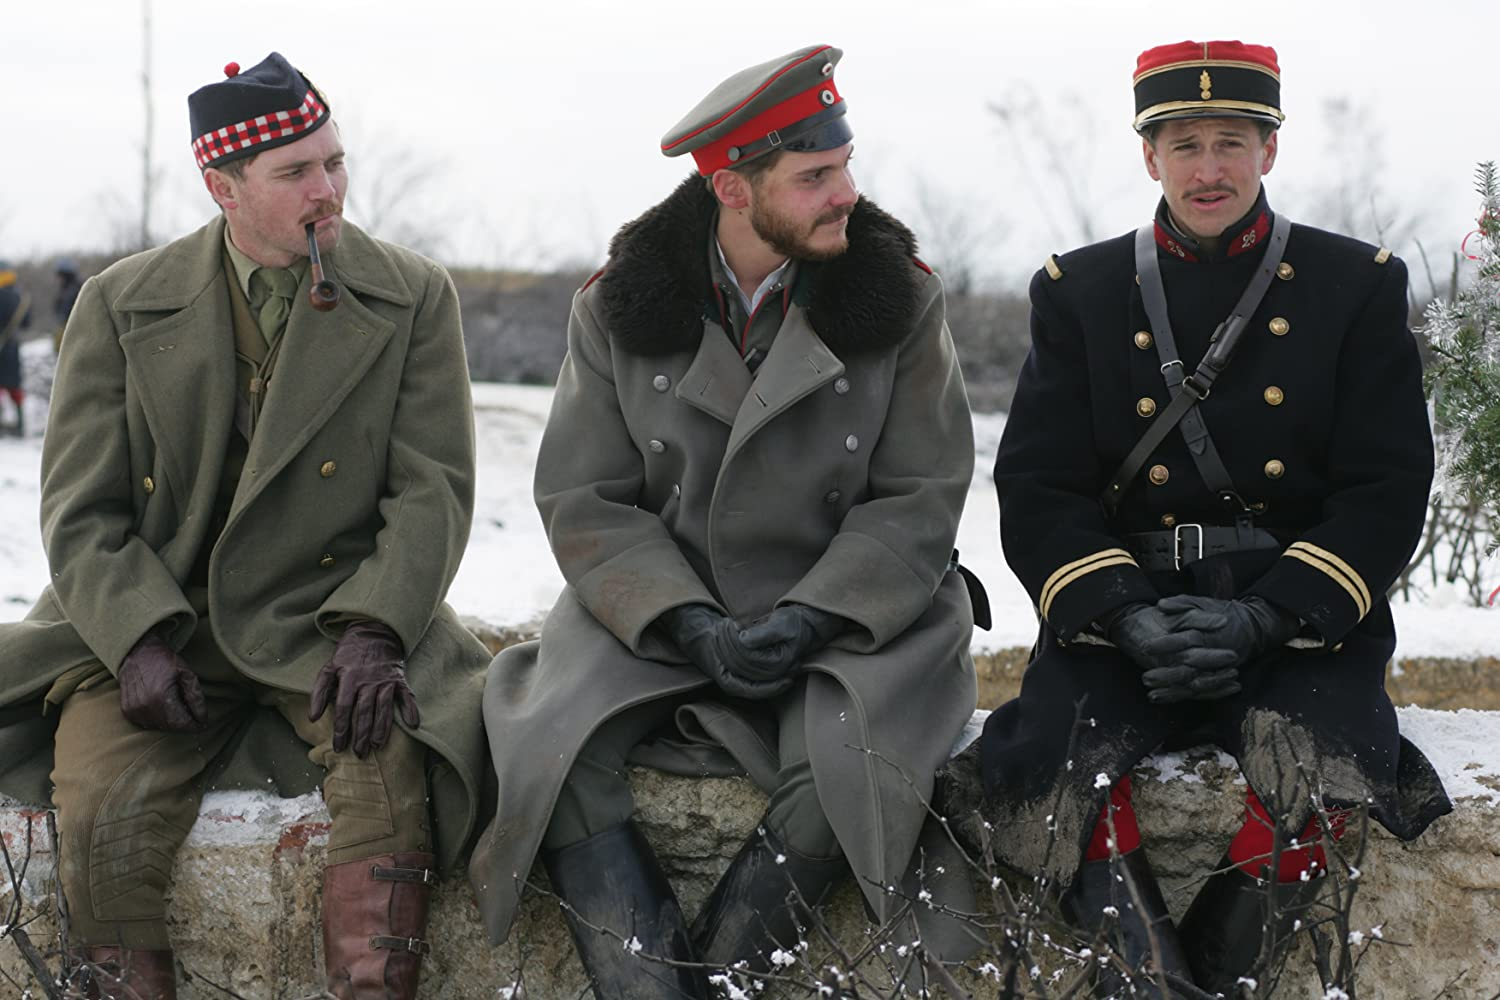 Daniel Brühl, Guillaume Canet, and Alex Ferns in Joyeux Noël (2005)